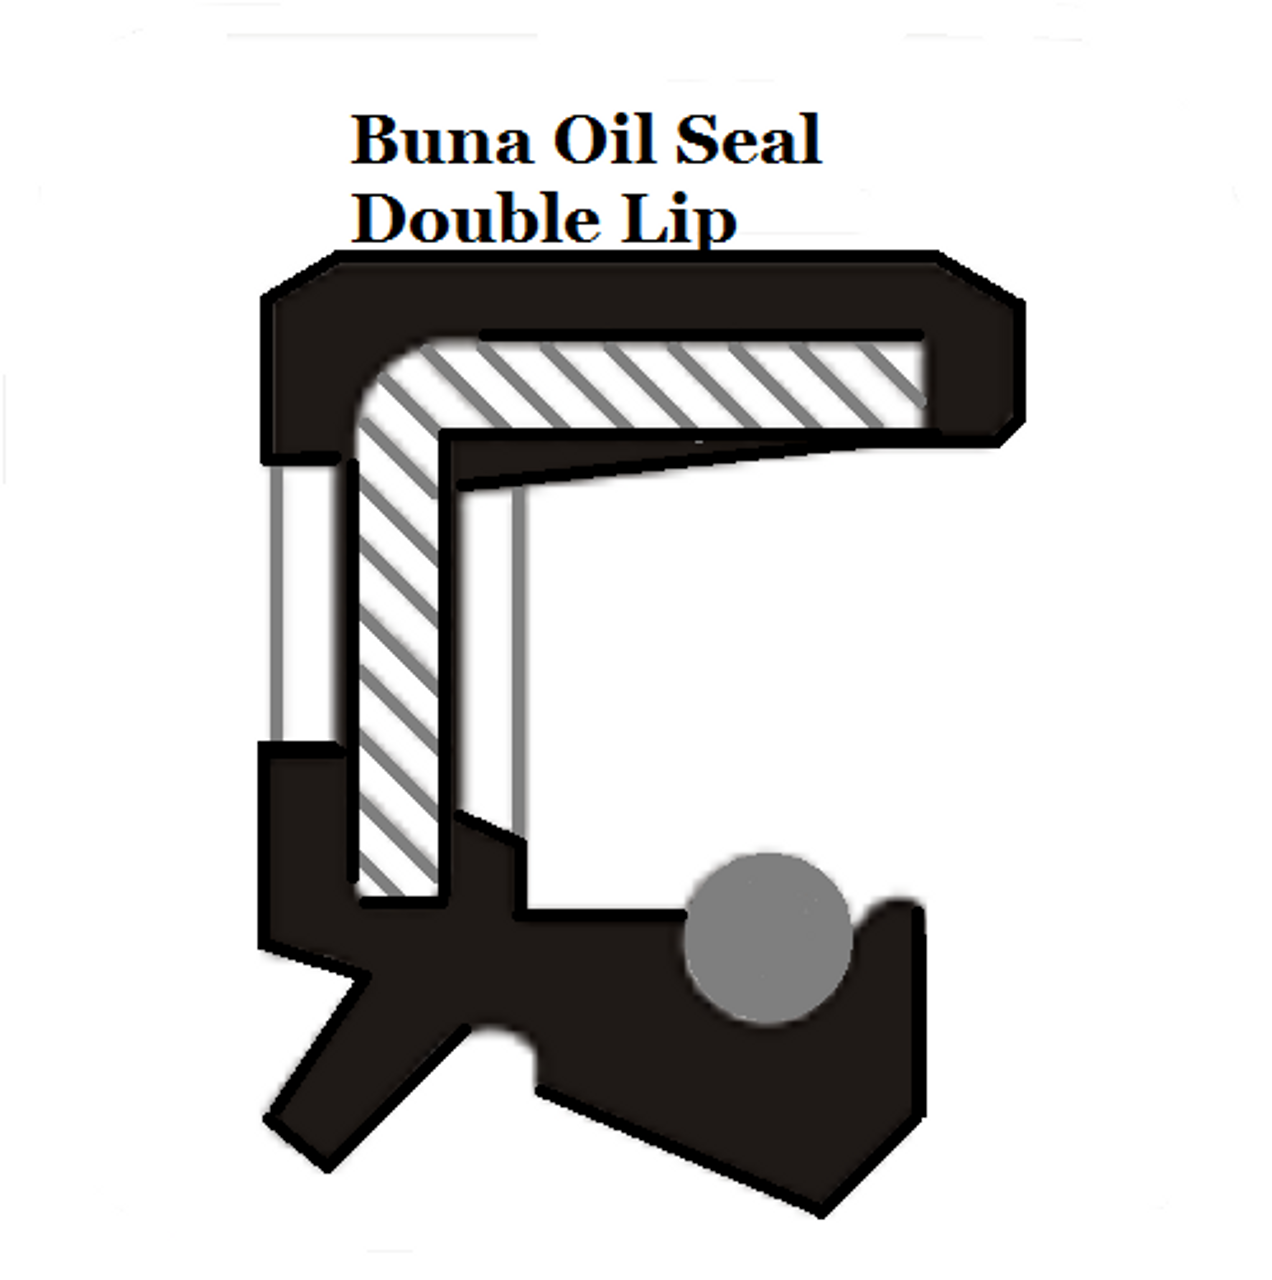 Oil Shaft Seal 105 x 130 x 13mm Double Lip   Price for 1 pc